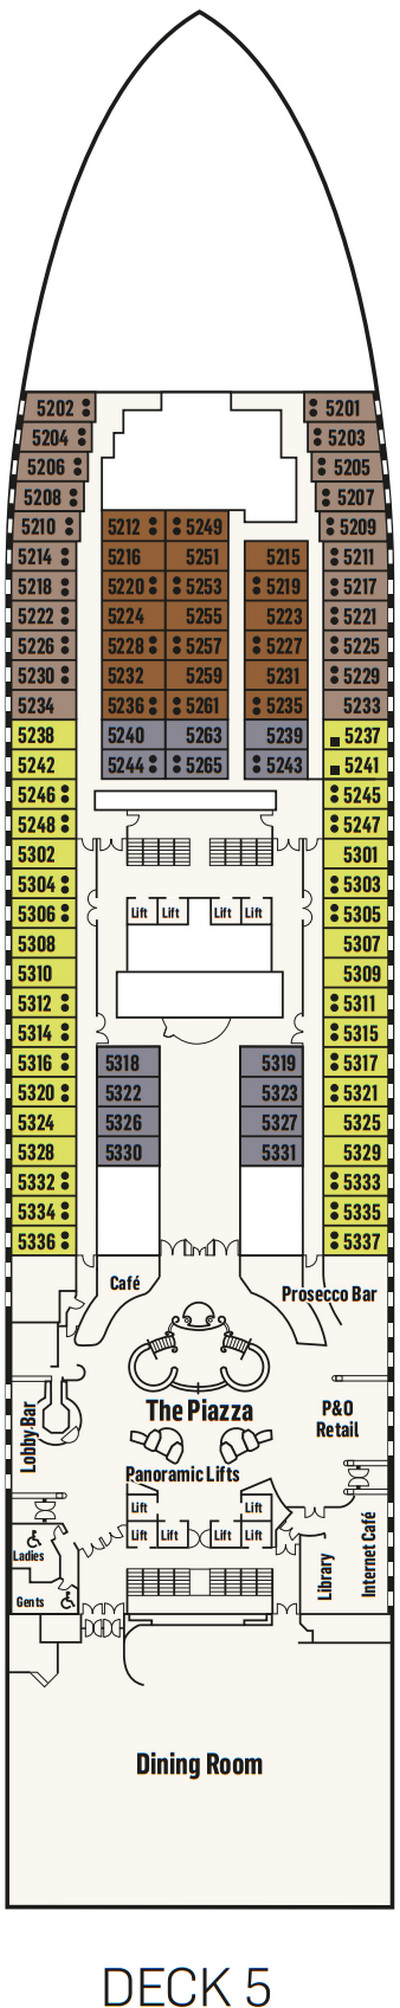 P&O - Pacific Adventure Deck 5 layout